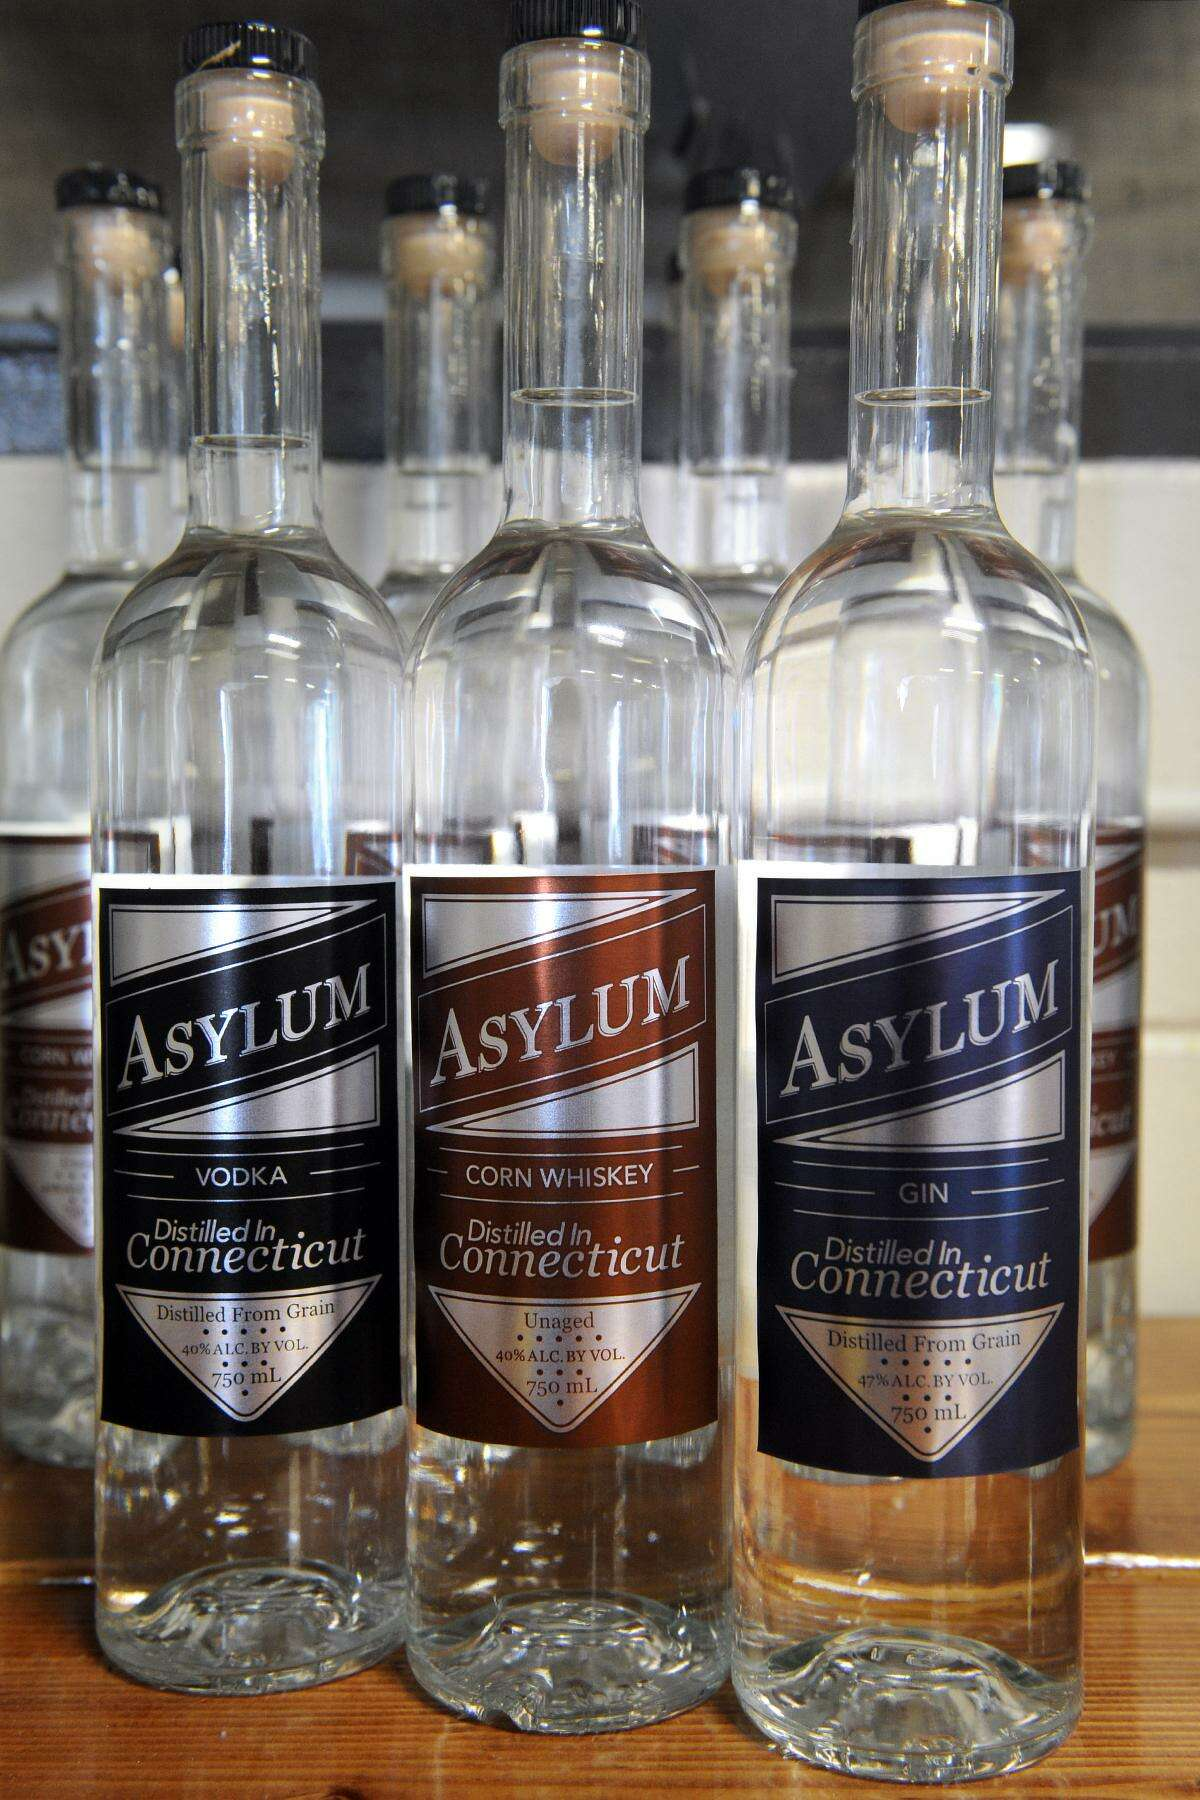 The finished product: vodka, corn whiskey and gin at Asylum Distillery in Bridgeport, Conn. June 2, 2016.